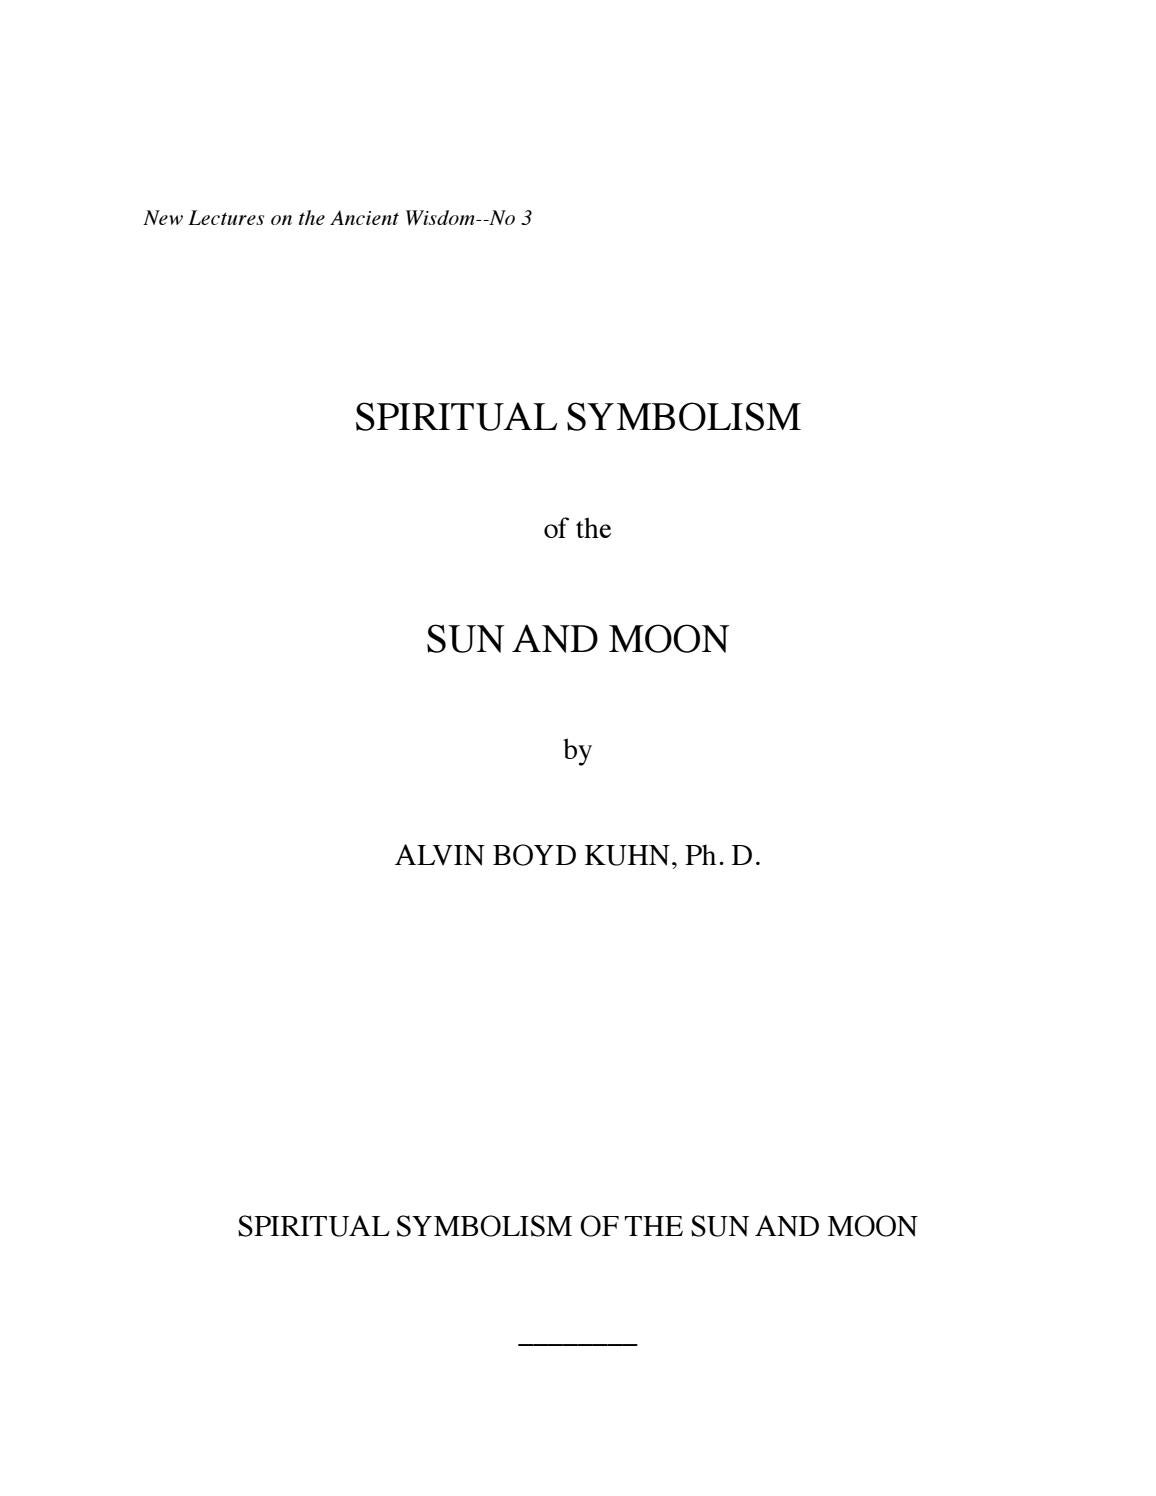 Alvin Boyd Kuhn Spiritual Symbolism Of The Sun And Moon By Kutto Issuu